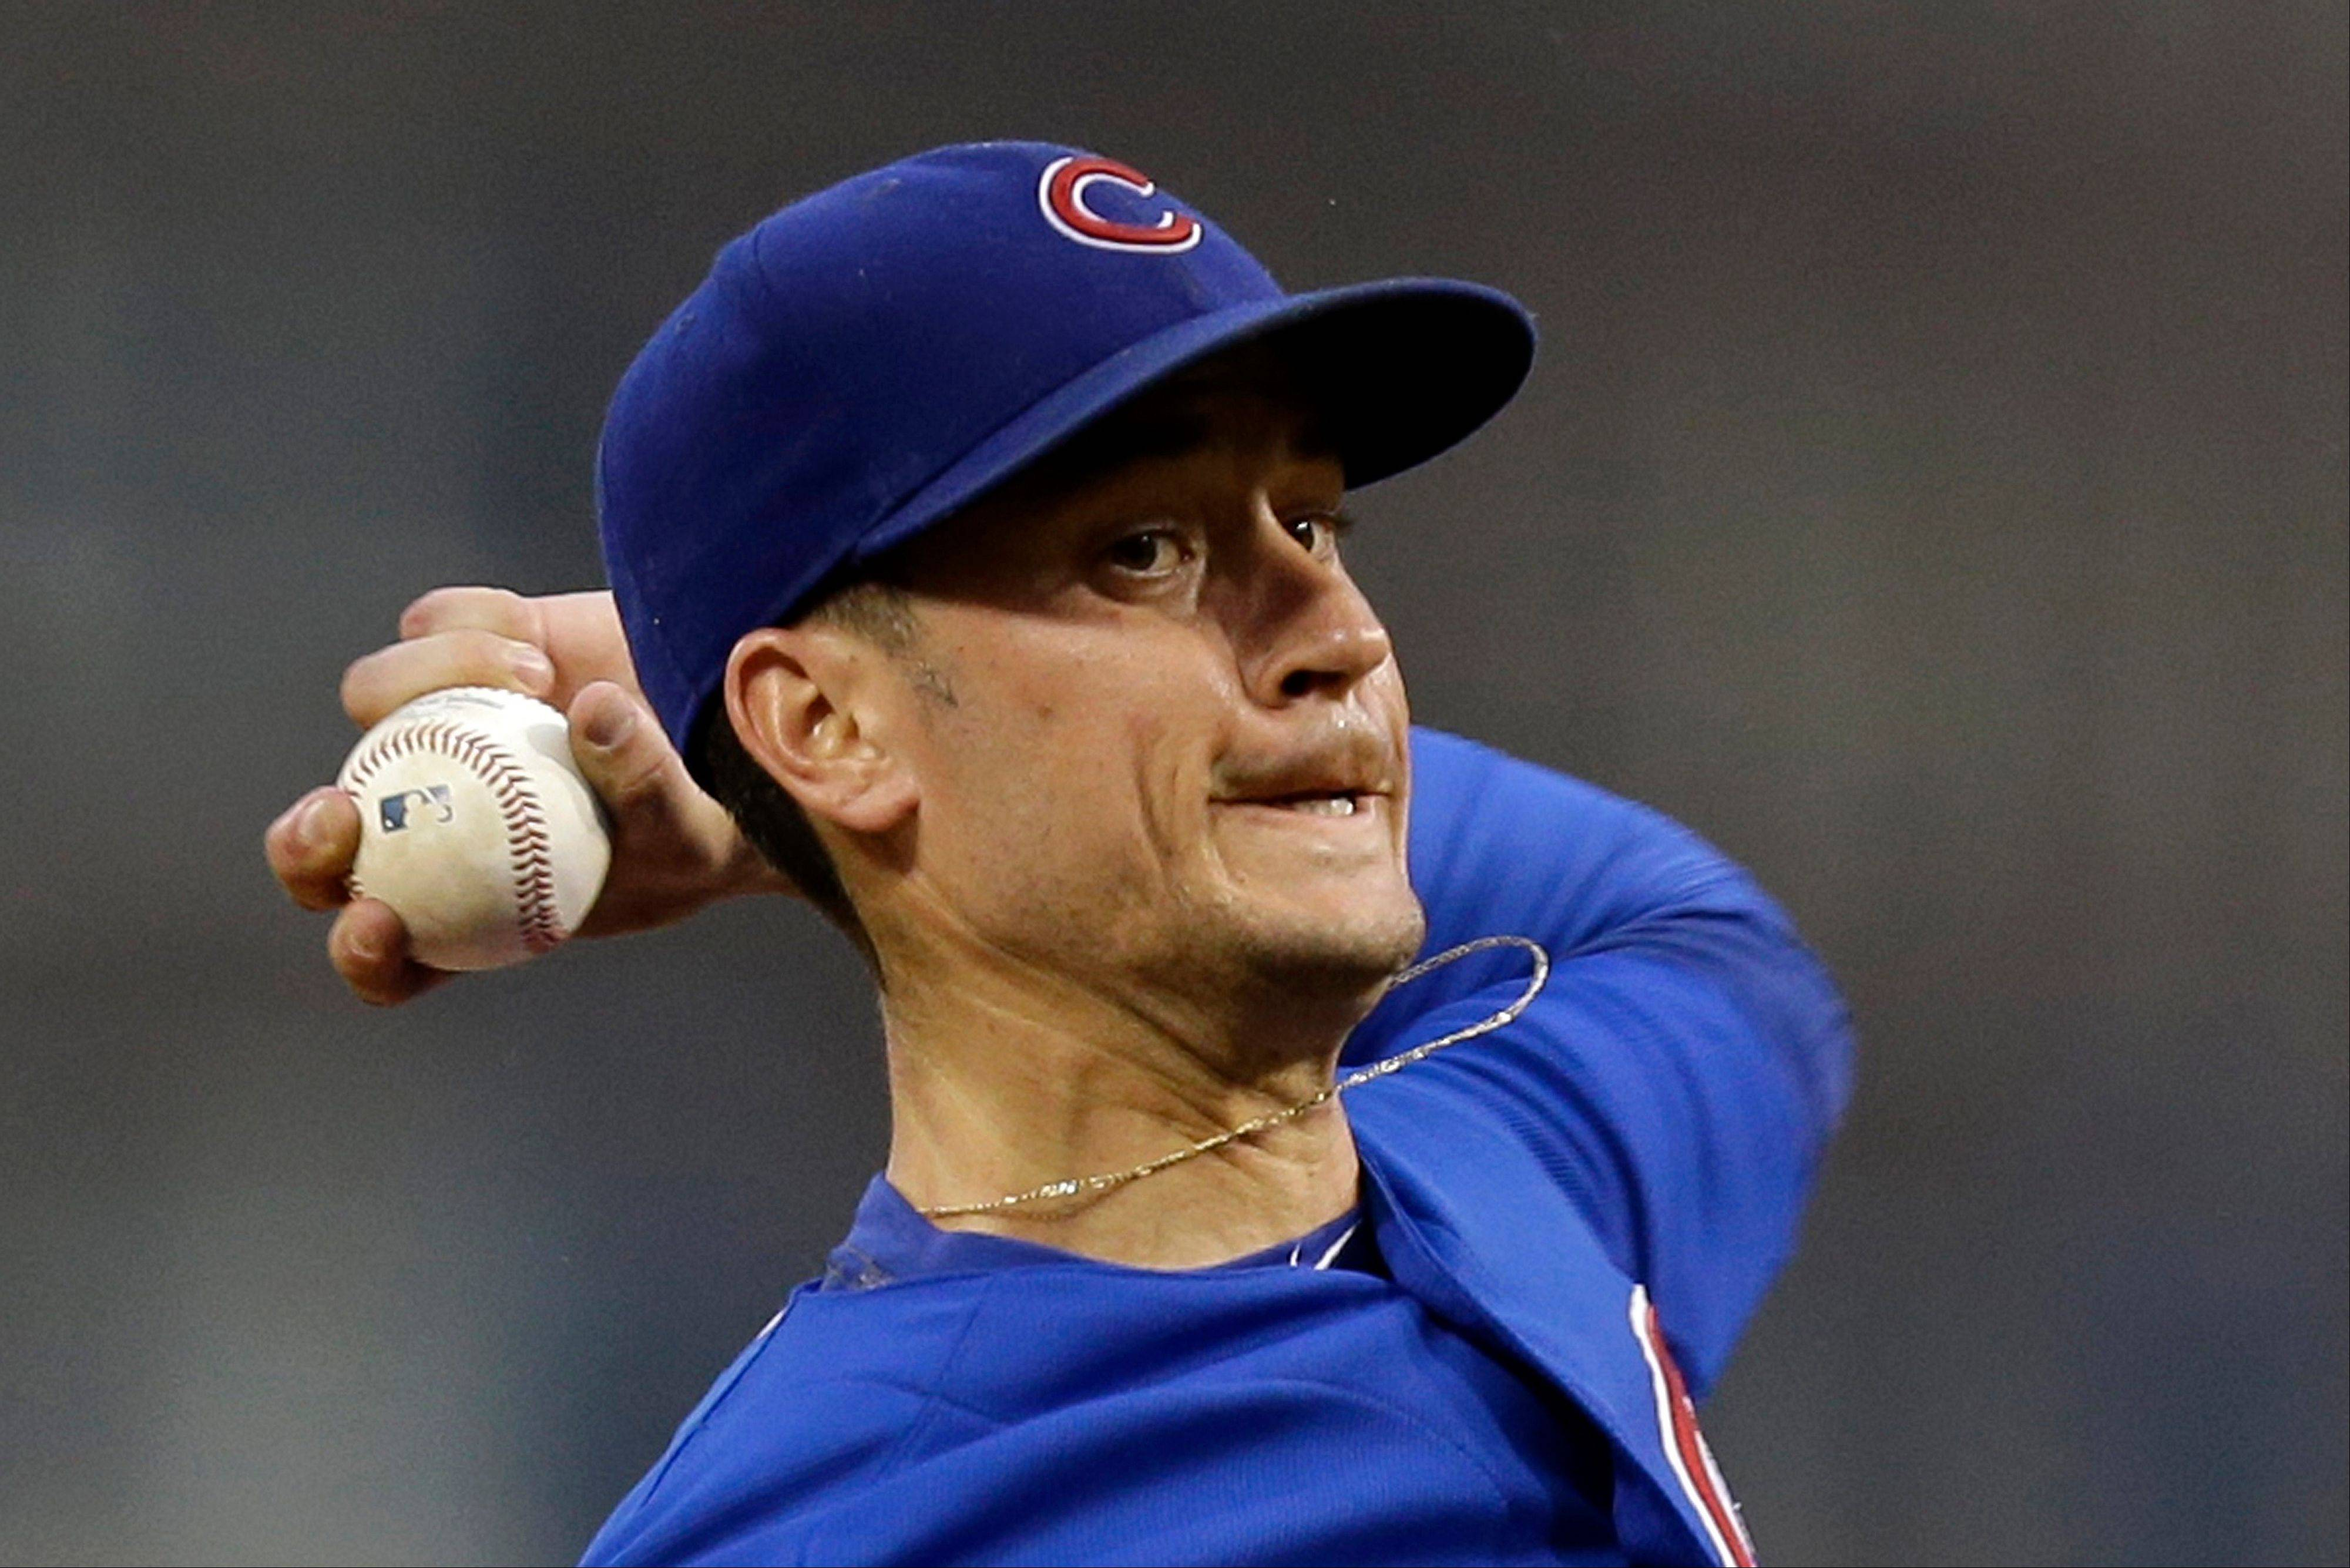 Chicago Cubs starting pitcher Chris Rusin delivers during the first inning of a baseball game against the Pittsburgh Pirates in Pittsburgh, Thursday, Sept. 12, 2013.